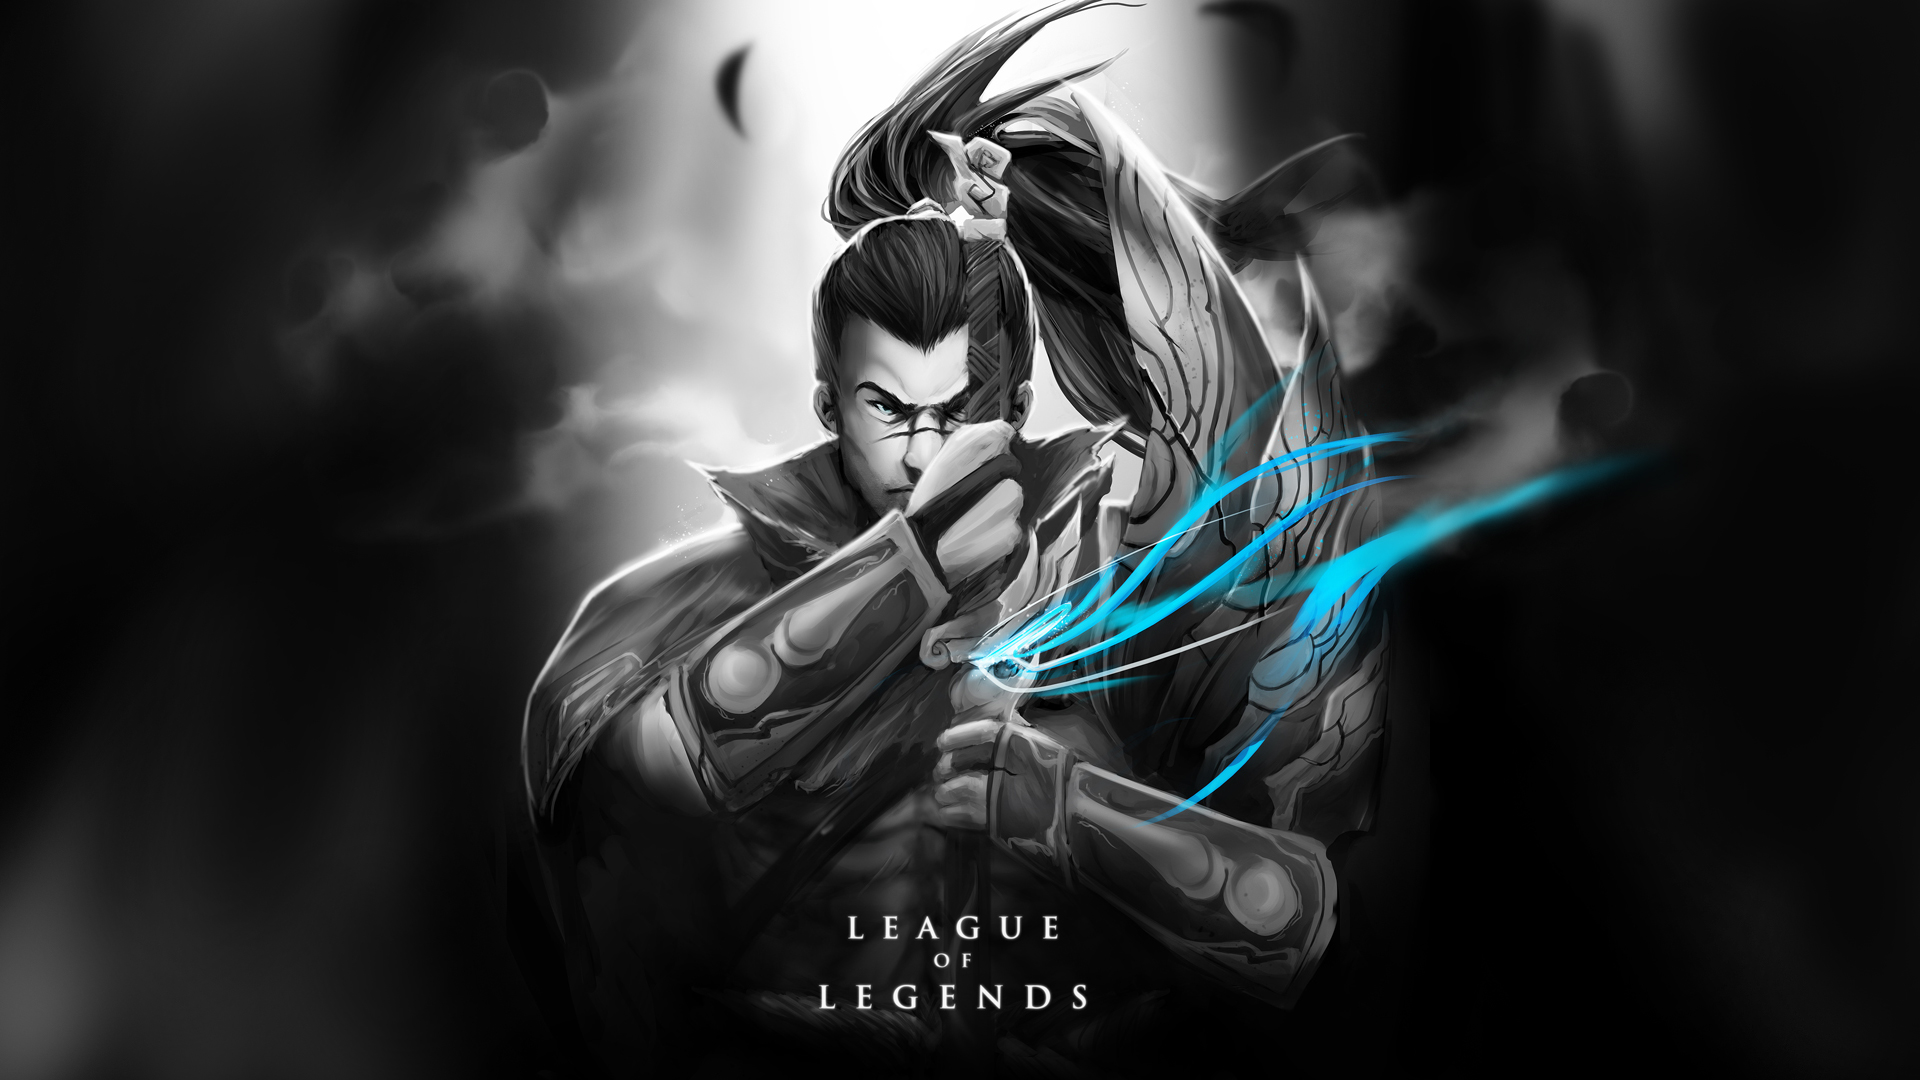 yasuo league of legends wallpapers hd 1920x1080 league of